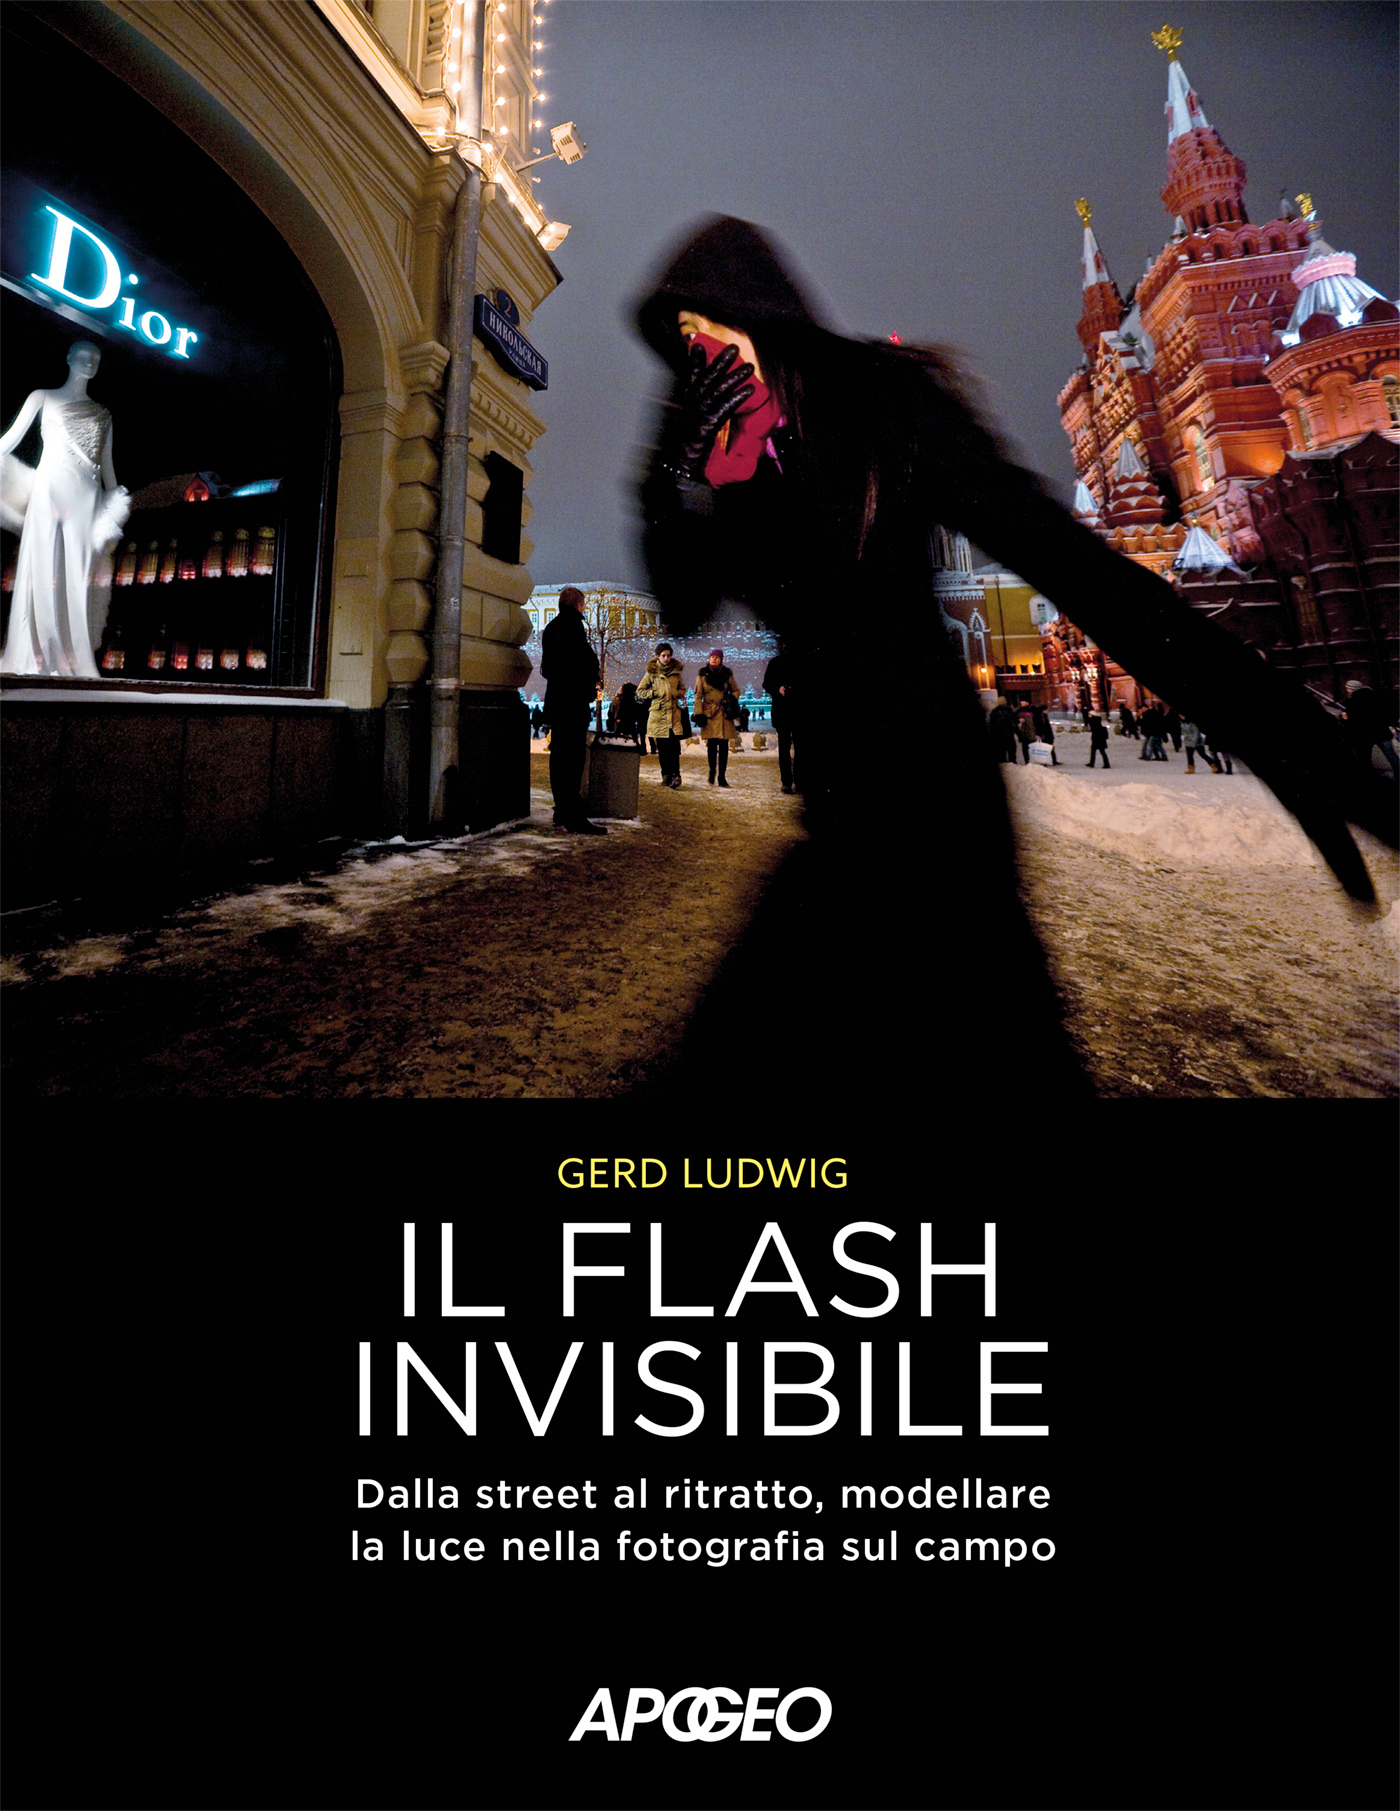 Il flash invisibile